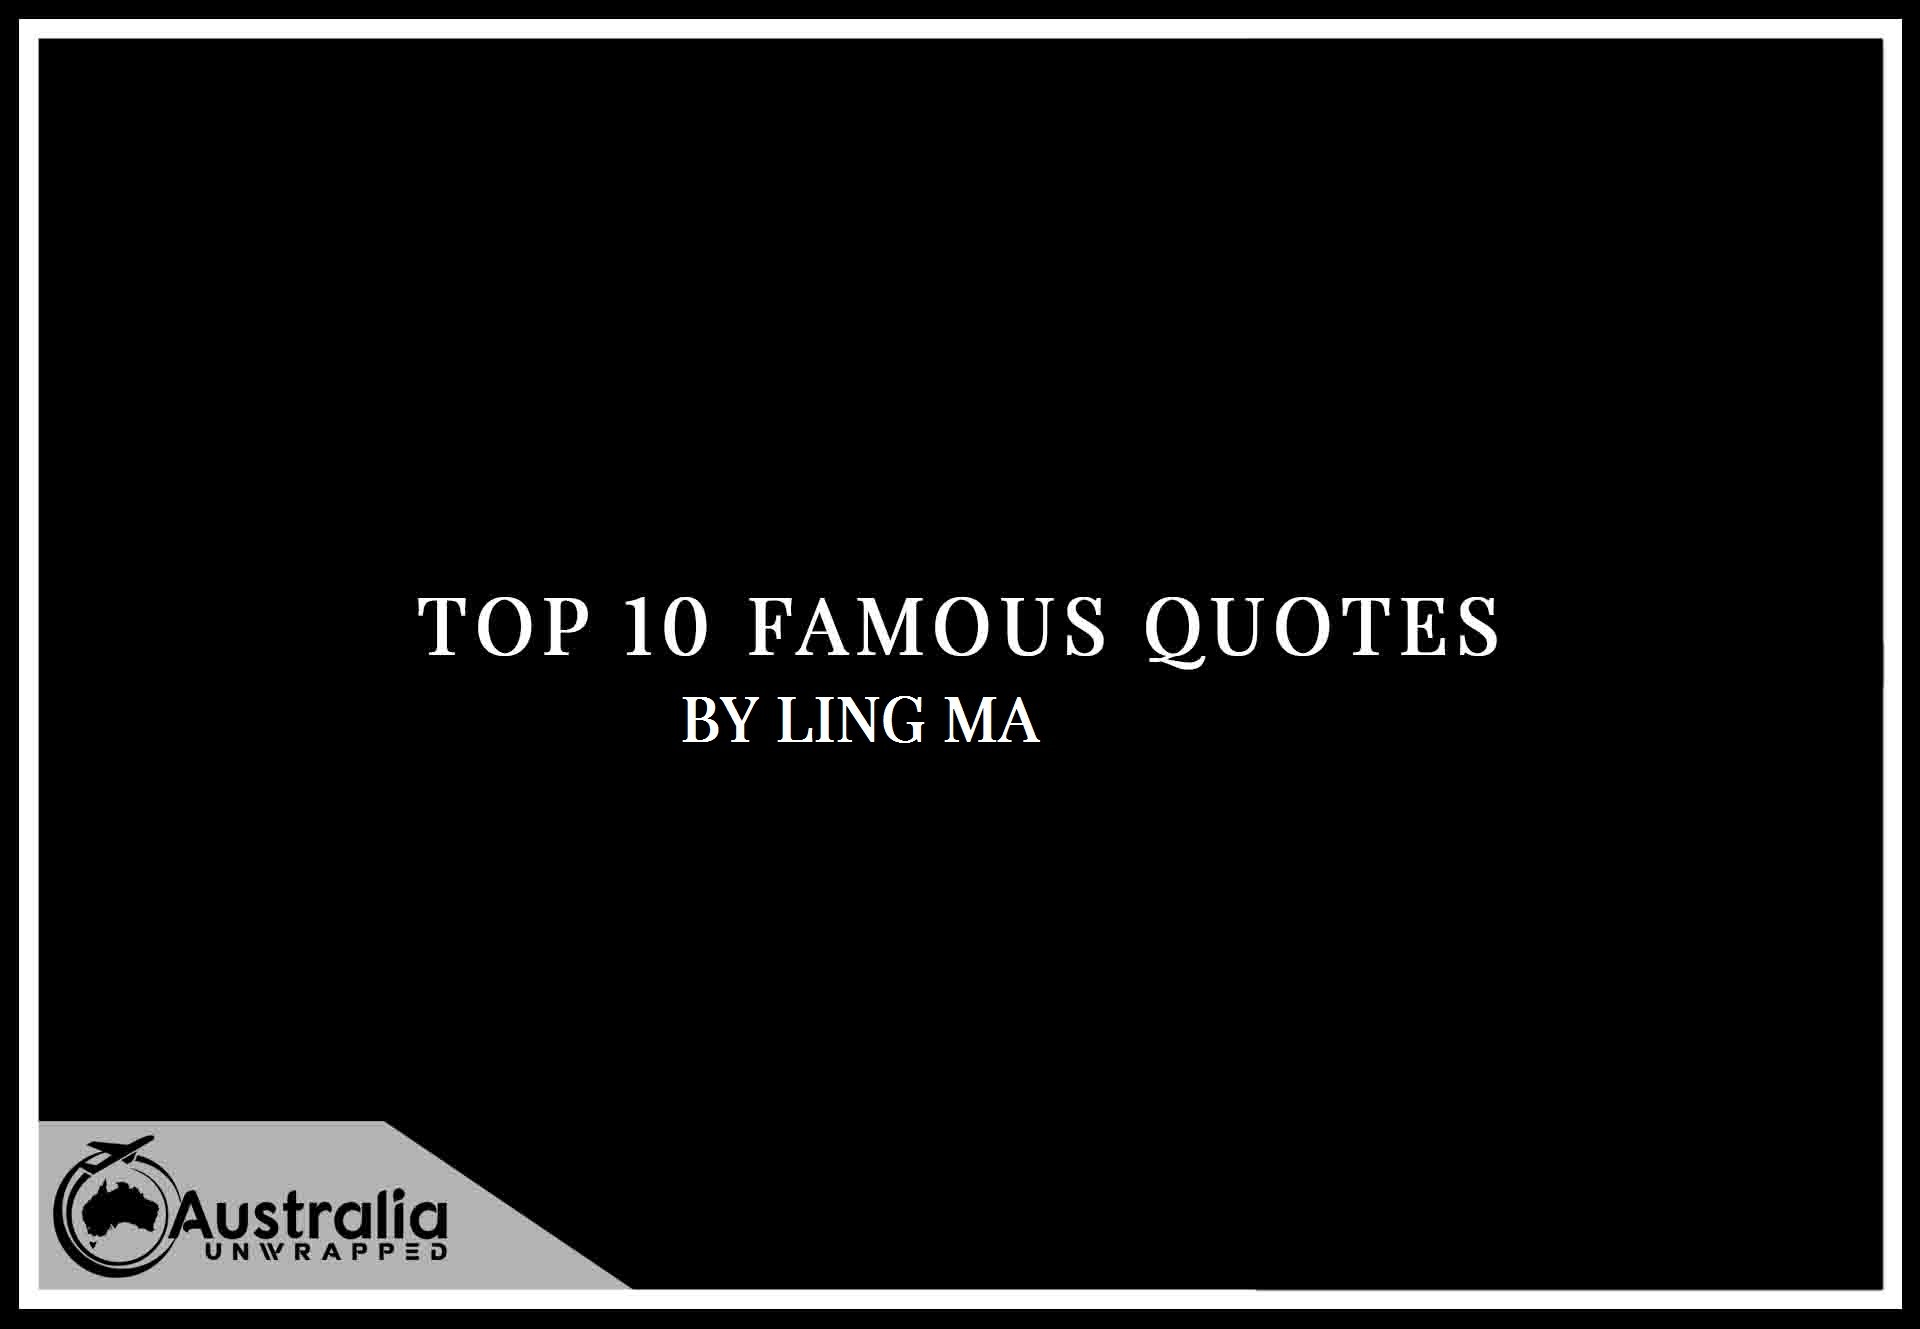 Ling Ma's Top 10 Popular and Famous Quotes